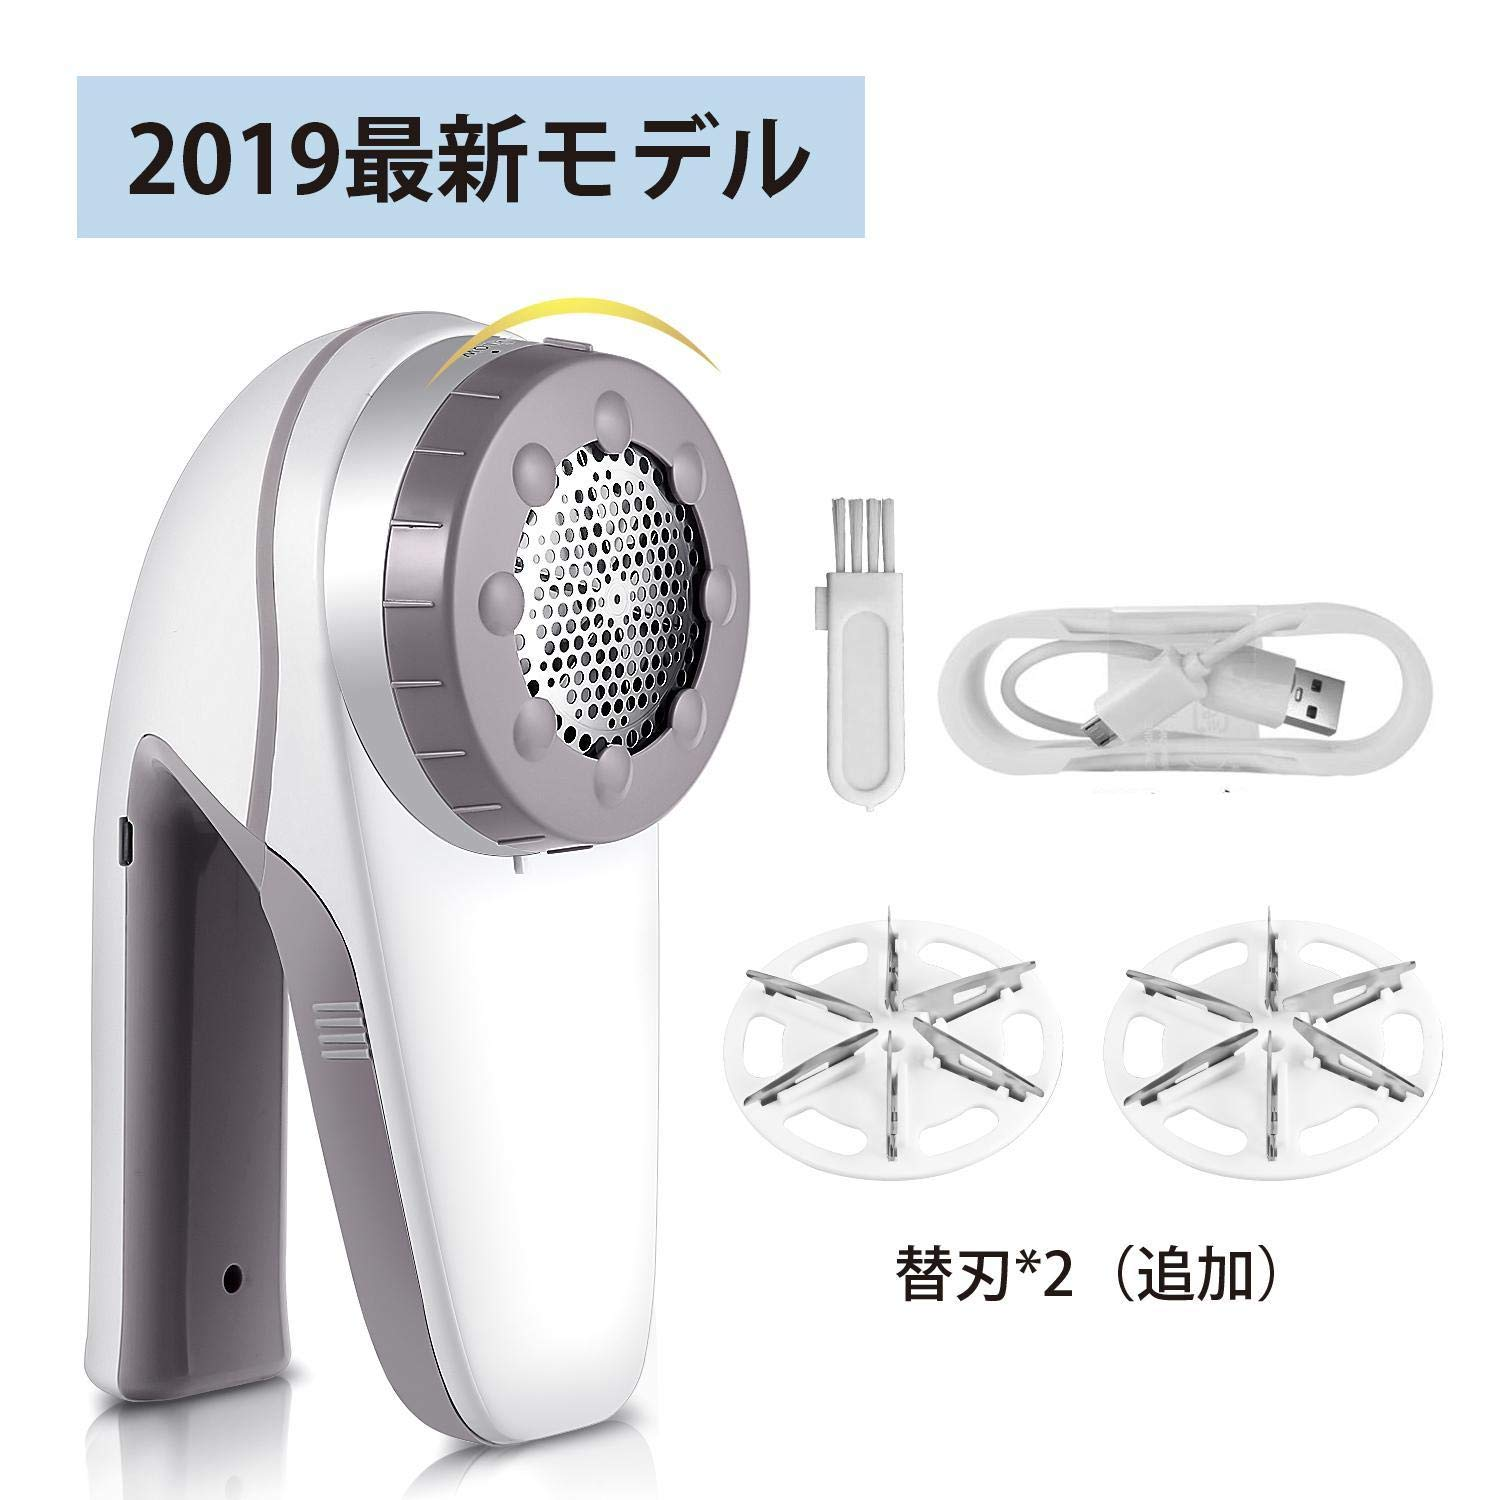 Fanxis Professional USB Rechargeable Fabric Shaver and Lint Remover with 3-Adjustable Shave Height for Your Clothes, Sofa, Sheets, Curtain, 1 Extra Replaceable Shave Blade Included